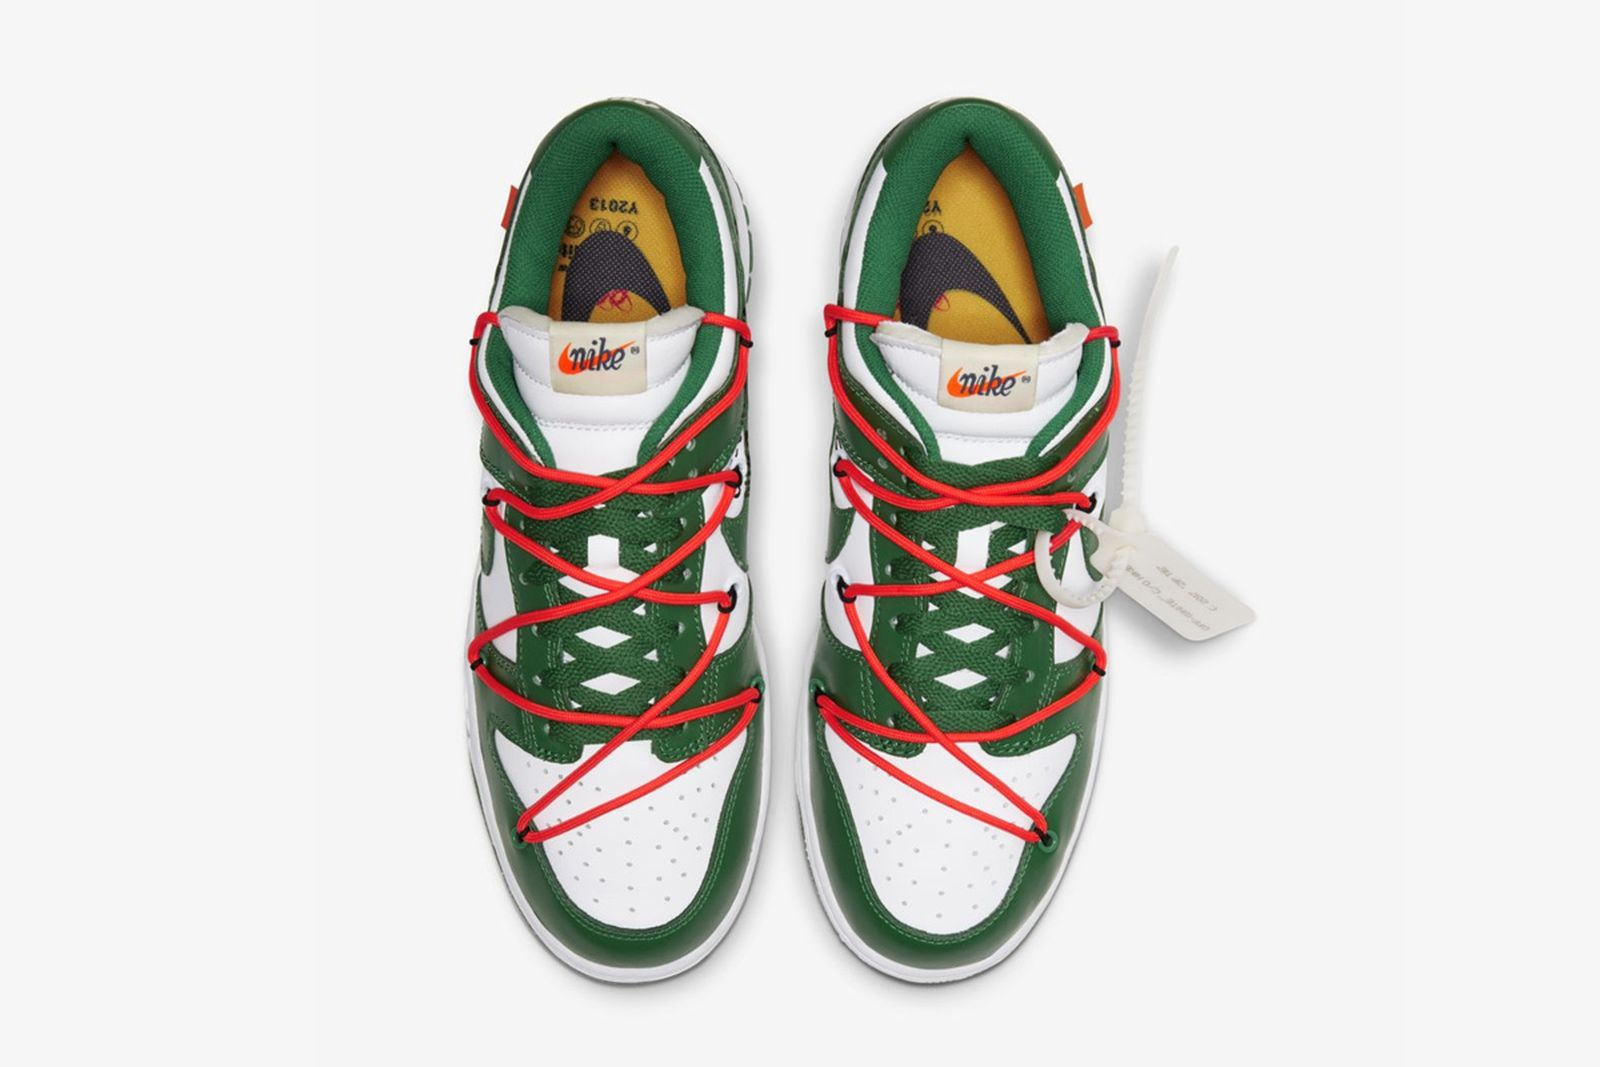 off-white-nike-dunk-low-pack-release-date-price-03